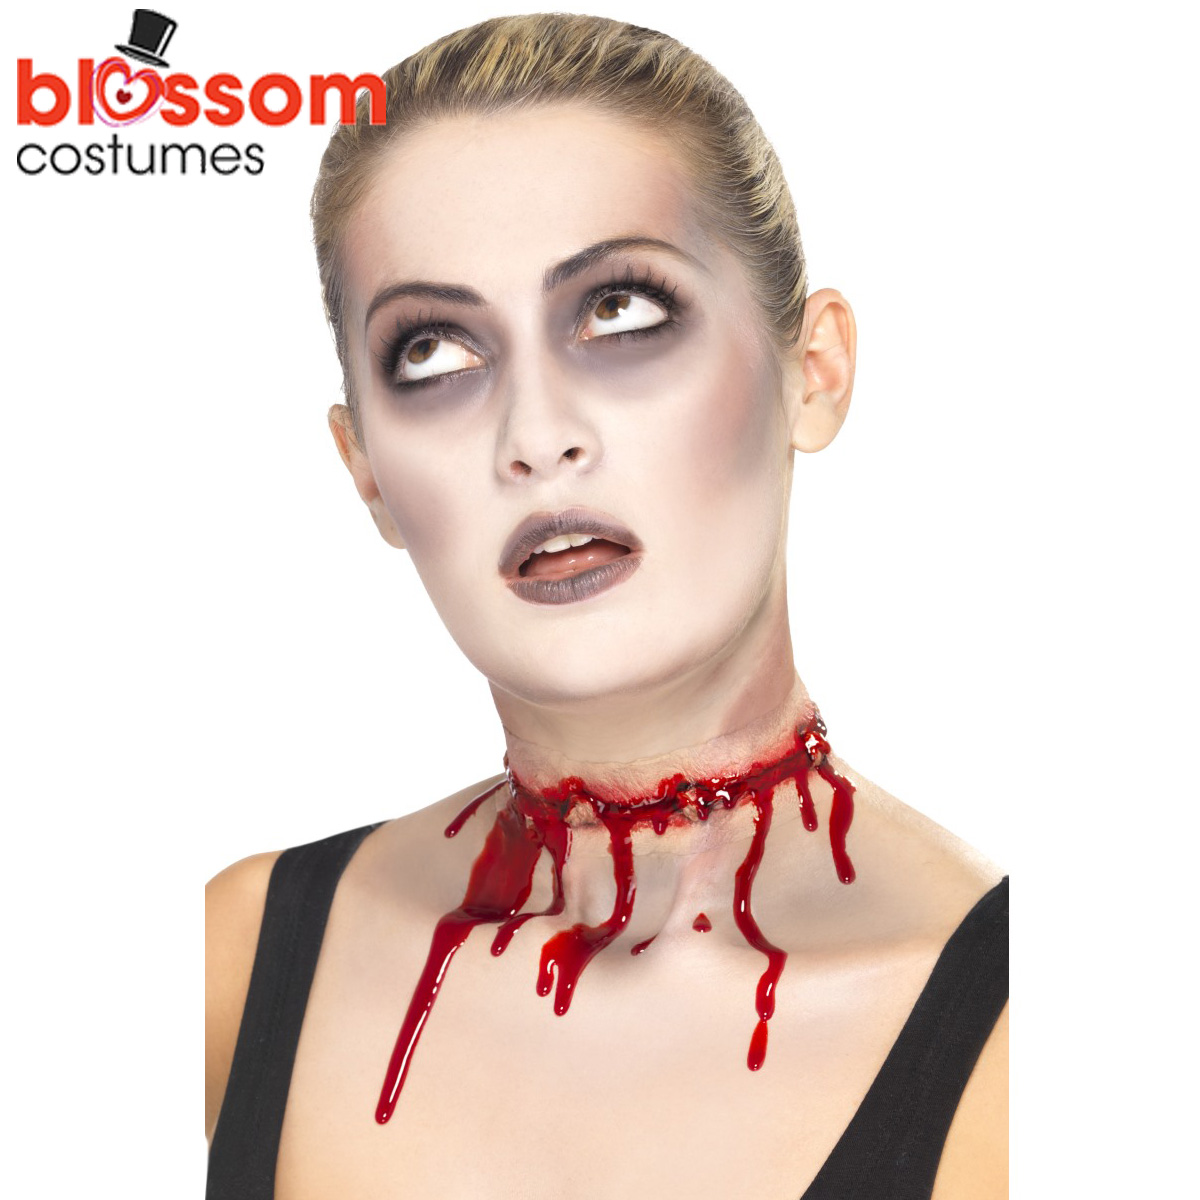 AC238-Barbed-Wire-Split-Zombie-Gory-Halloween-Latex-Costume-Make-Up-Special-FX